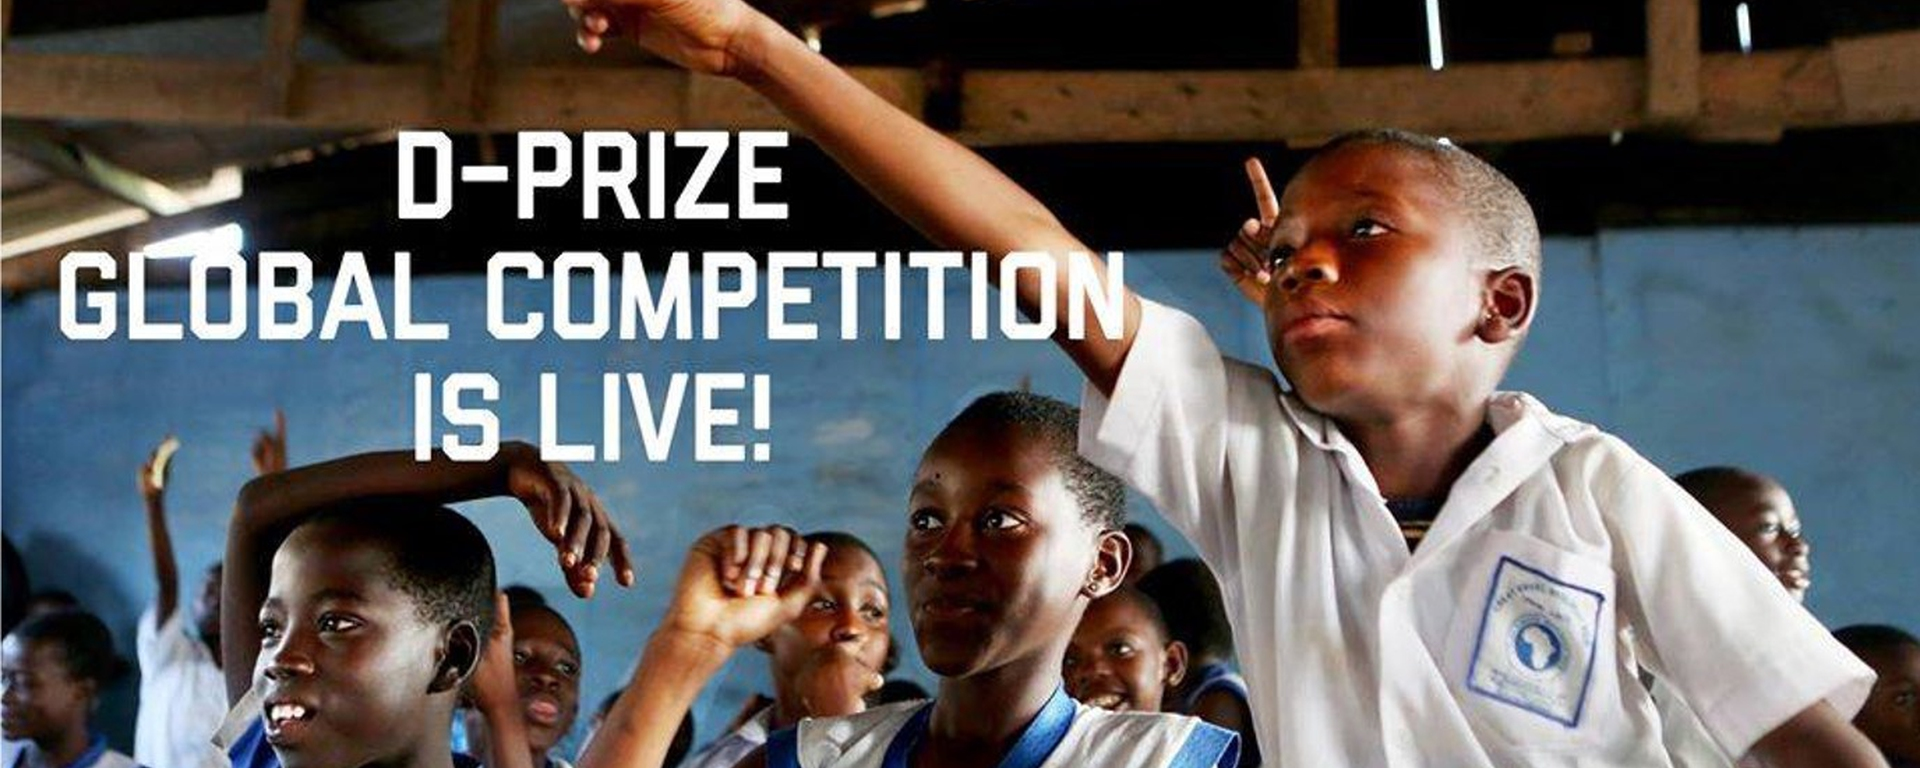 D-Prize - D-Prize Global Competition 2021 Movemeback African initiative cover image